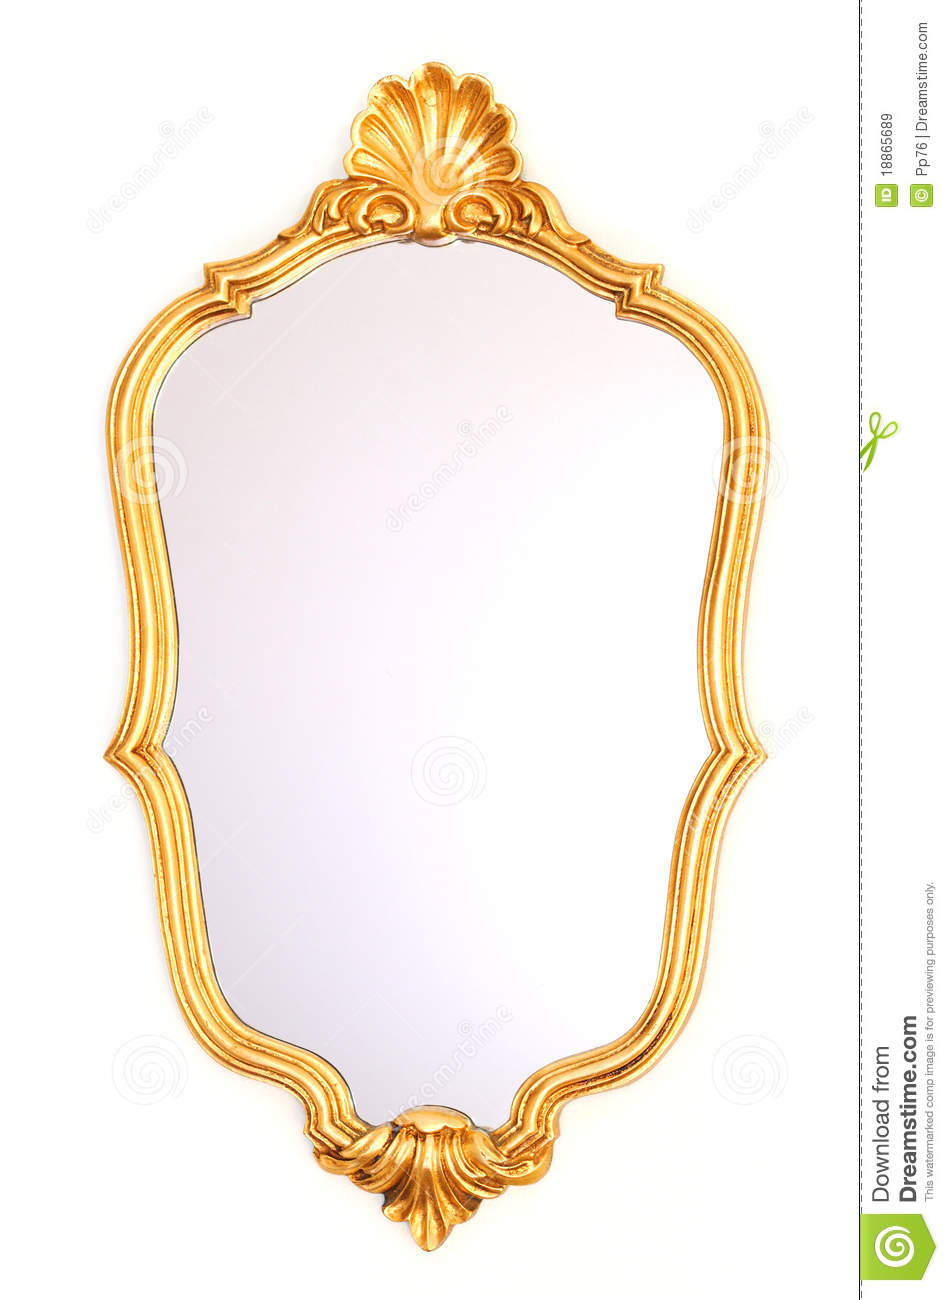 Mirror Gold Frame Royalty Free Stock Images - Image: 18865689